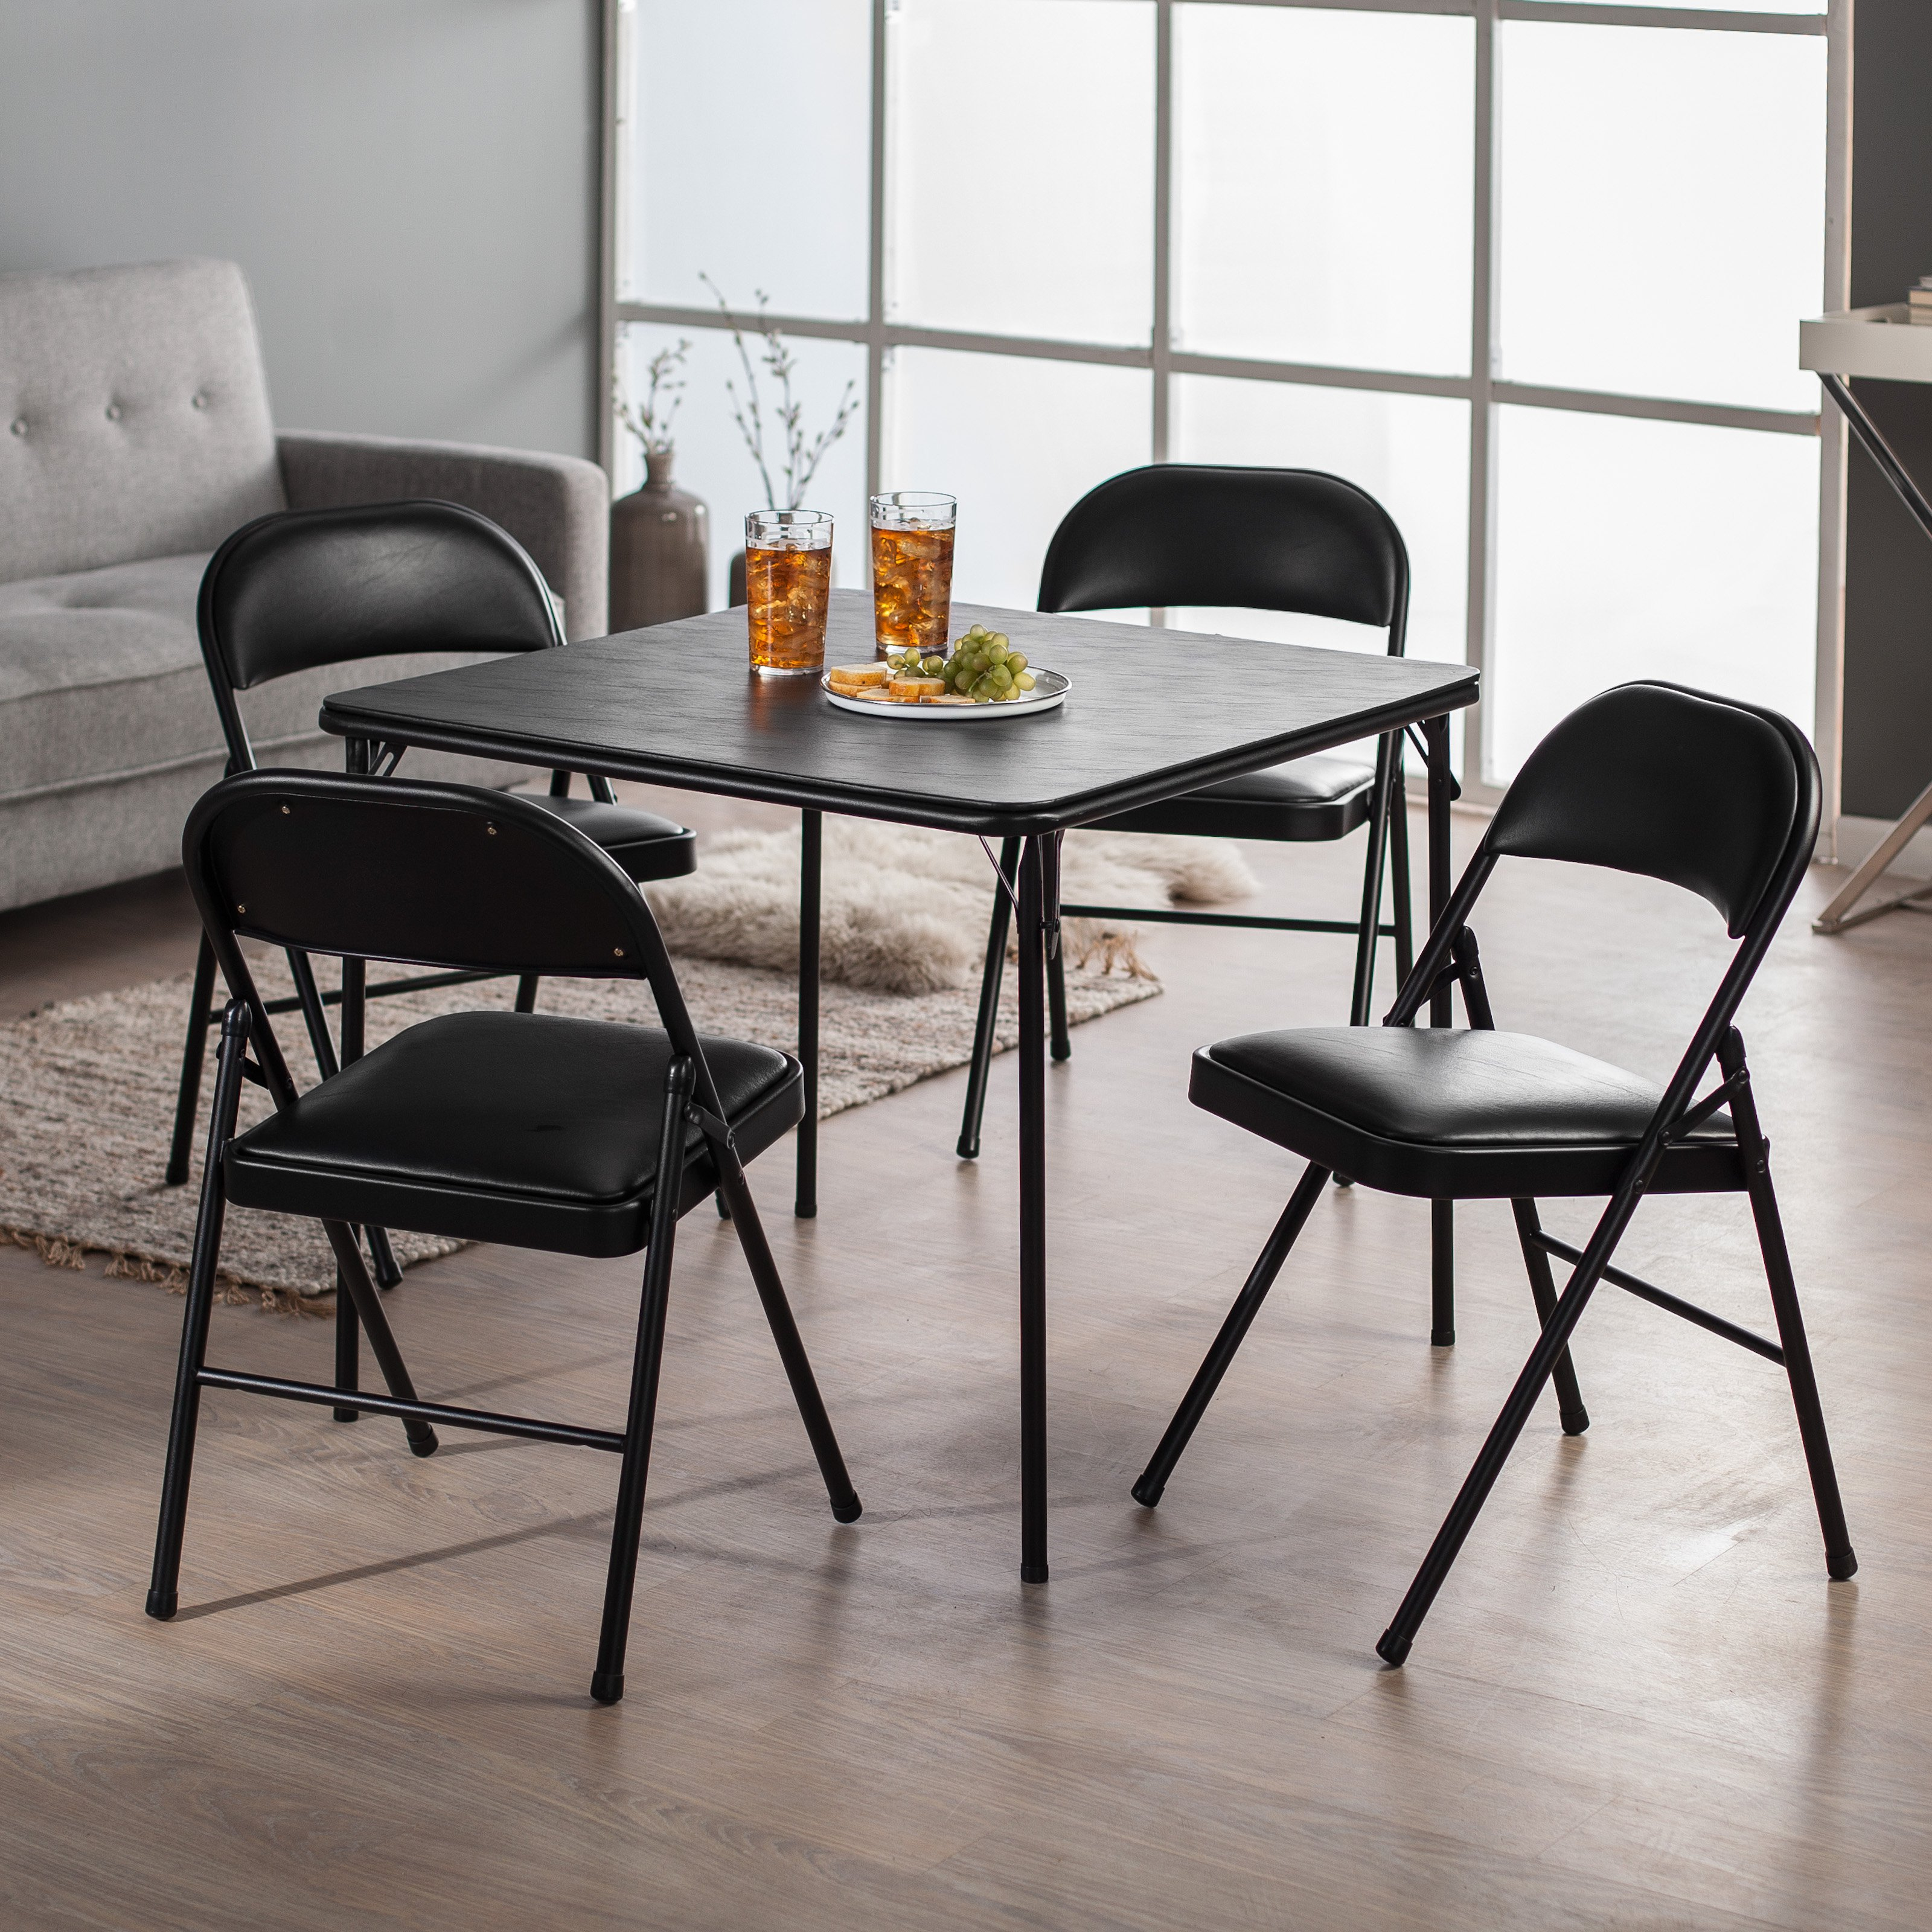 Meco Sudden Comfort Deluxe Double Padded Chair and Back- 5 Piece Card Table Set Black by Meco Corp